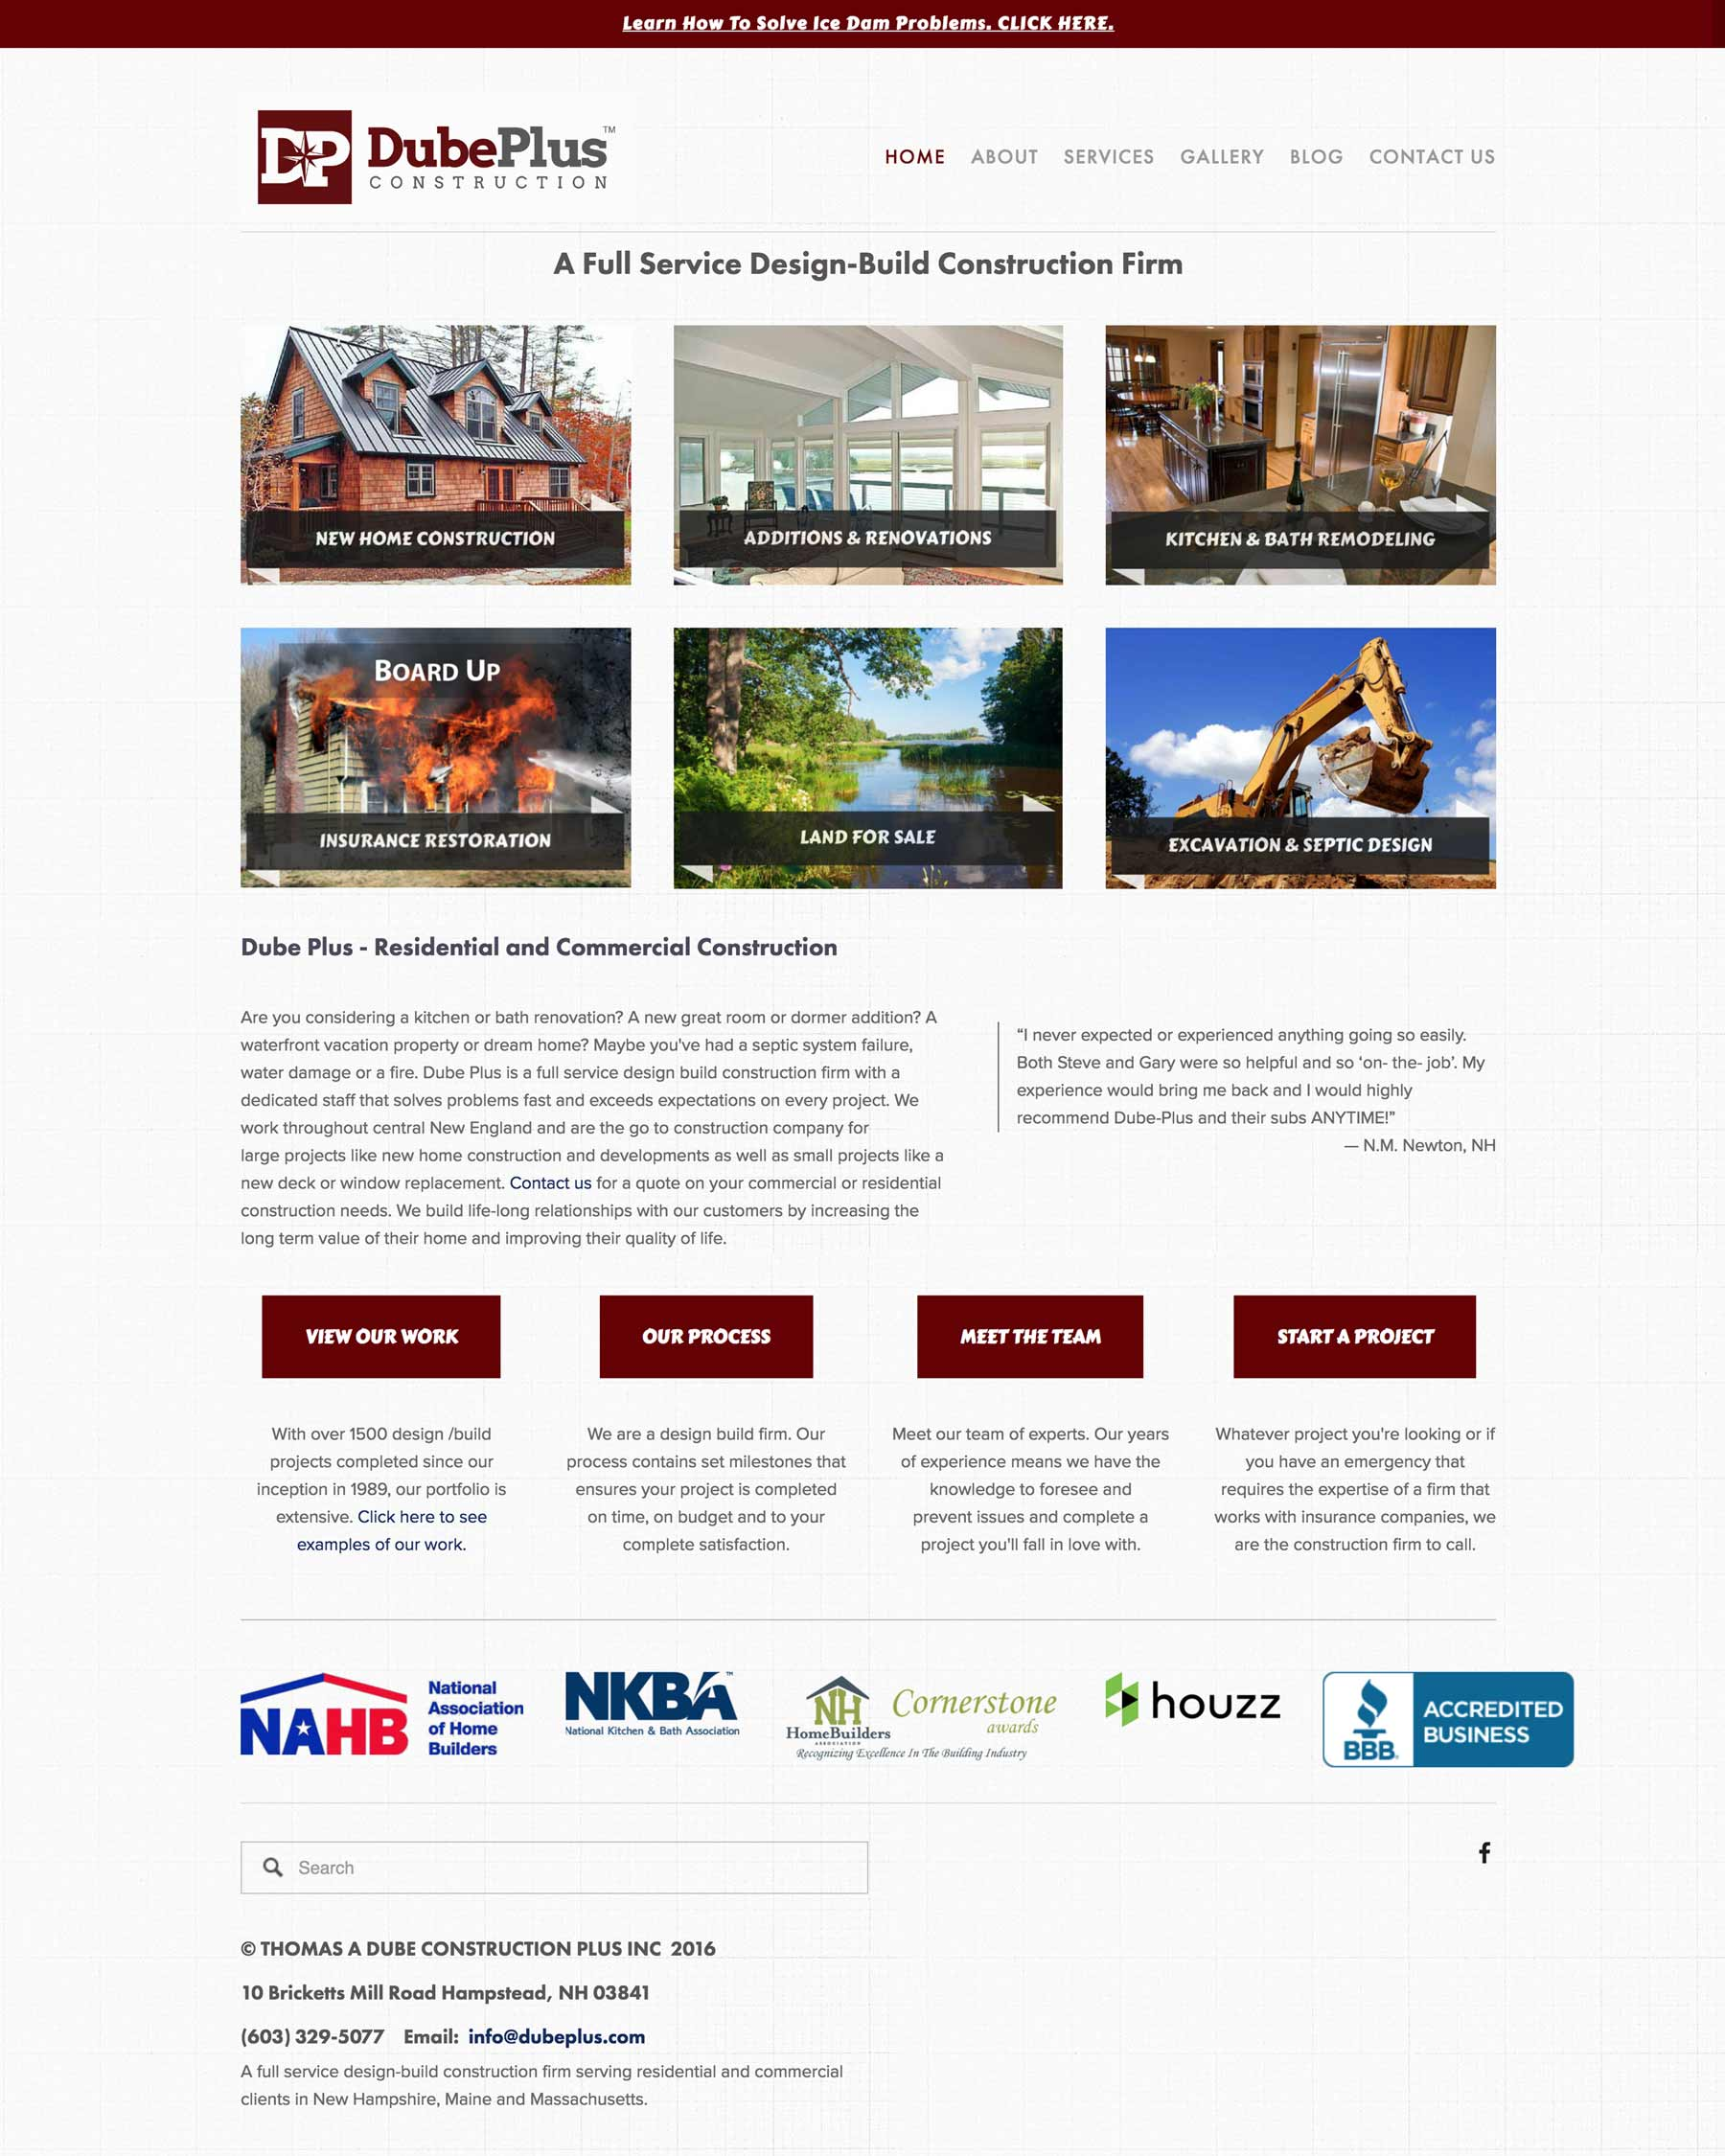 Dube Plus Construction - A Design-Build Contractor and Excavation Company